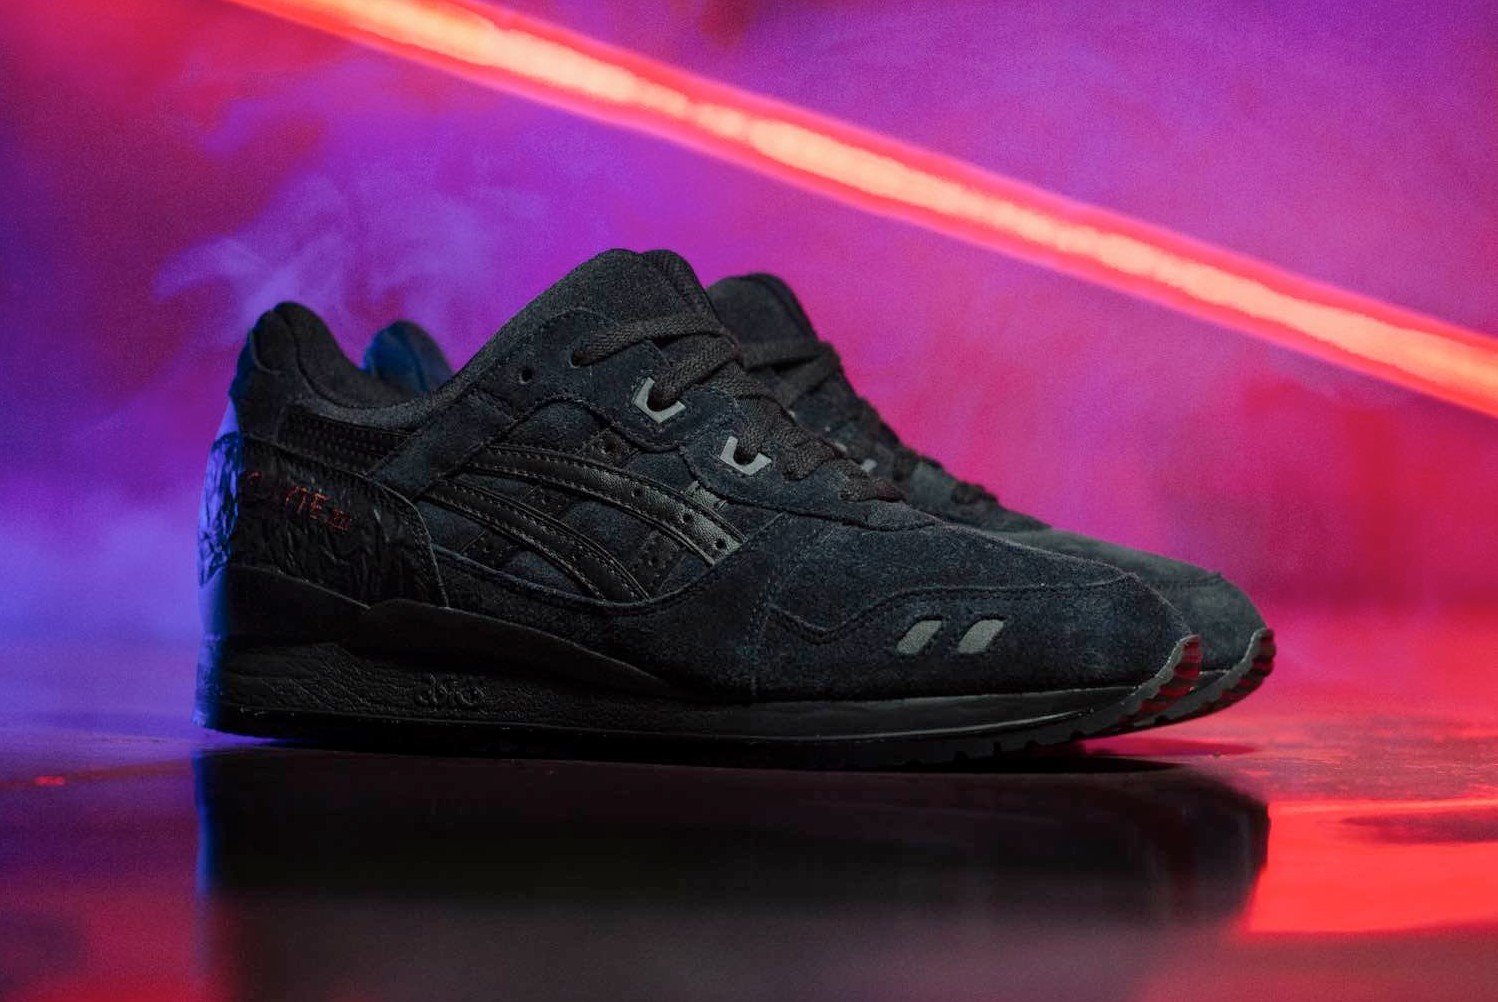 Asics Gel Lyte III Valentine's Day Pack H63SK-9090